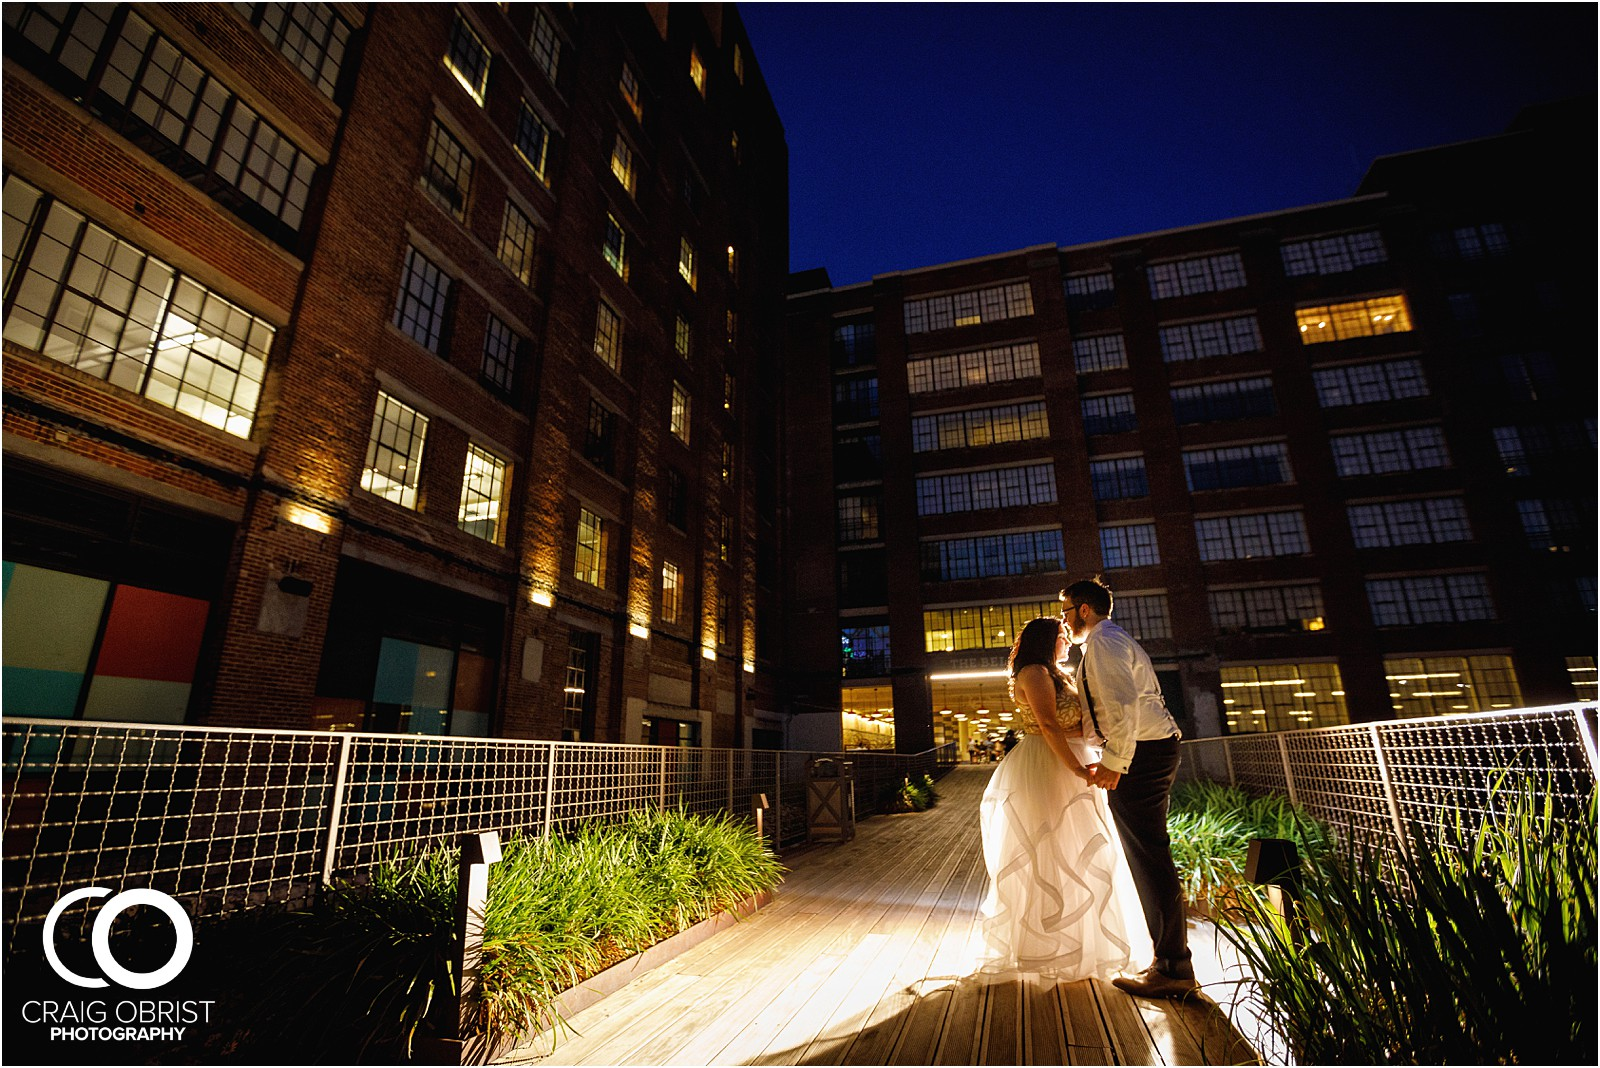 Ponce city markey Atlanta Beltline Piedmont Park engagement portraits_0028.jpg